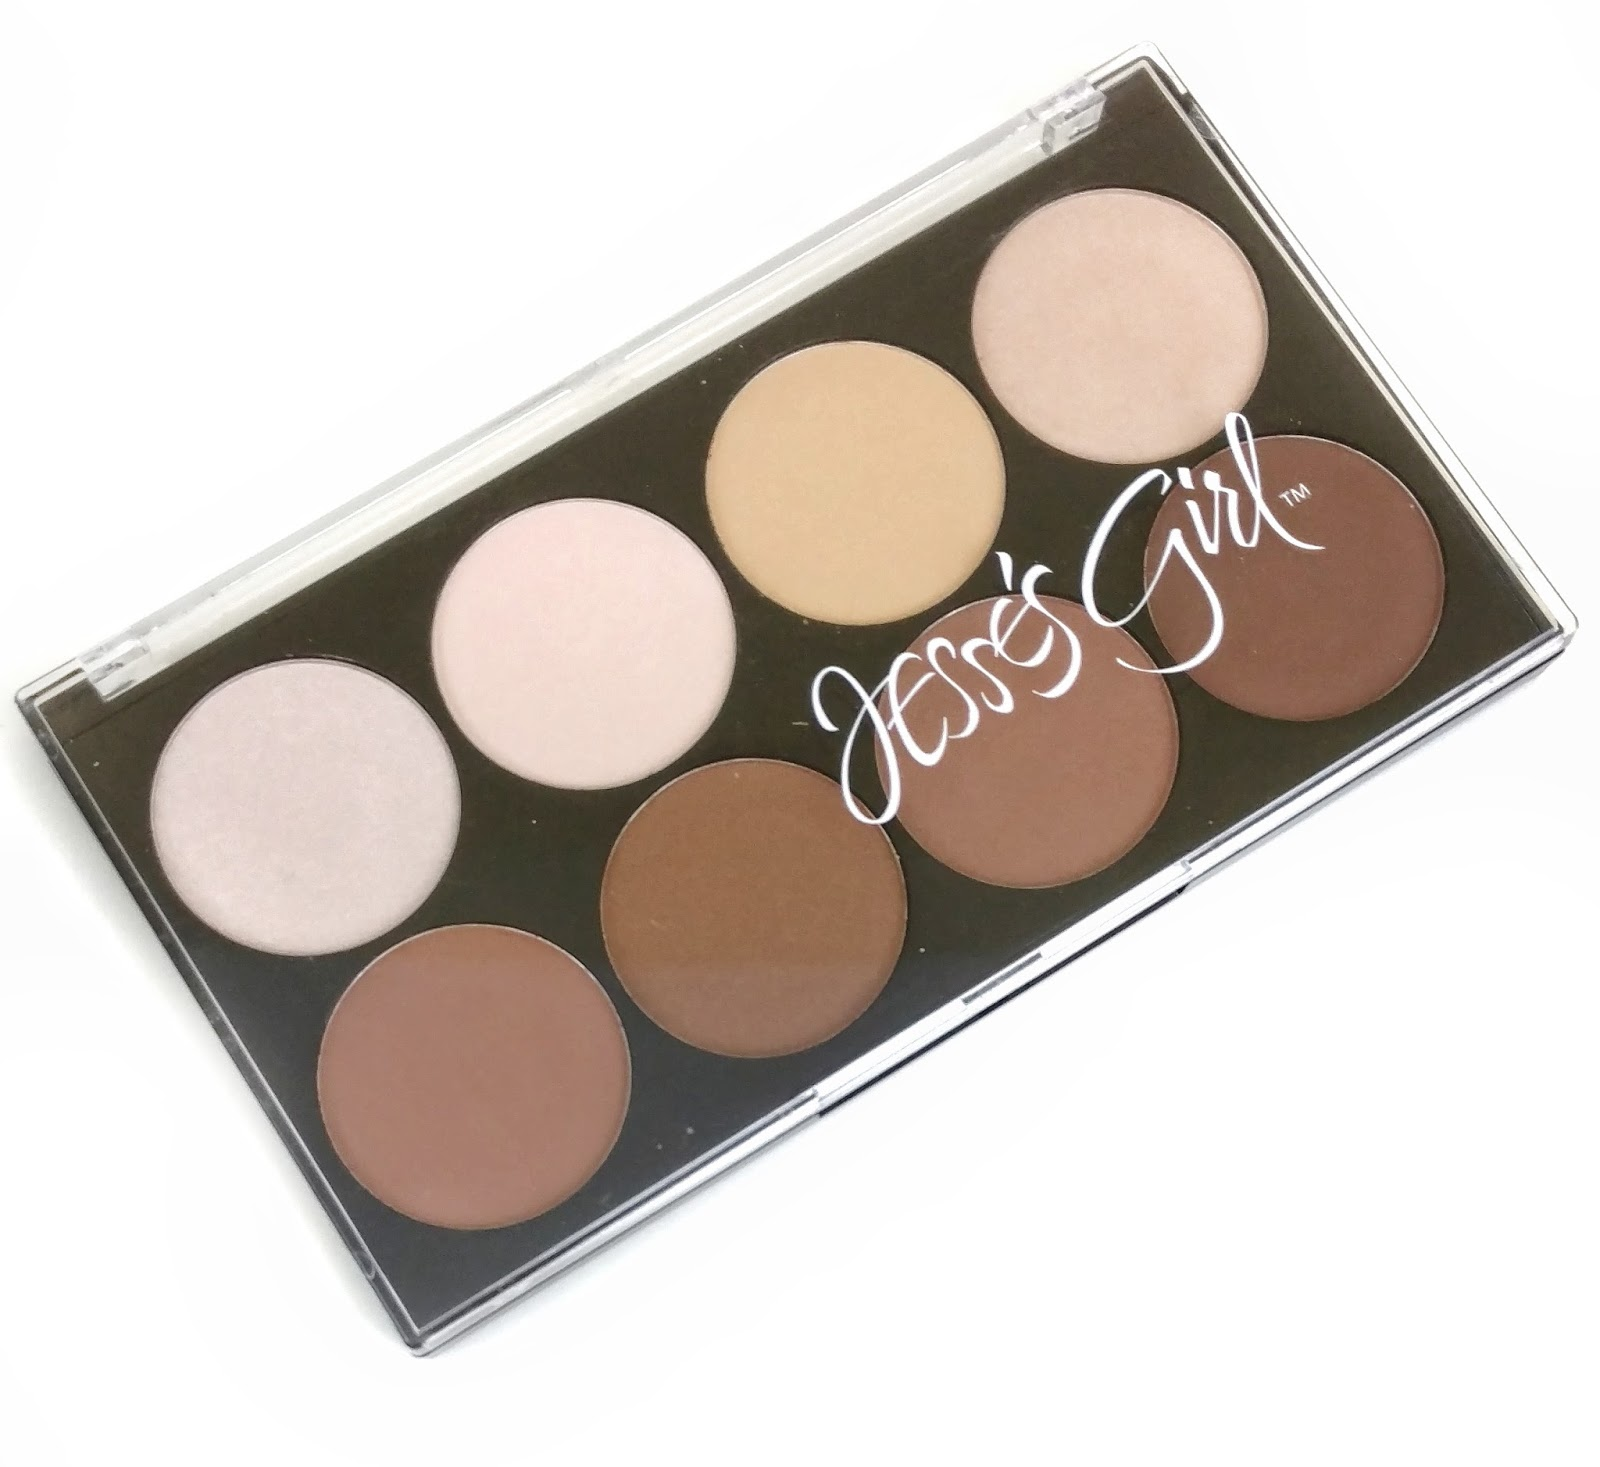 jesse's girl highlight & contour palette